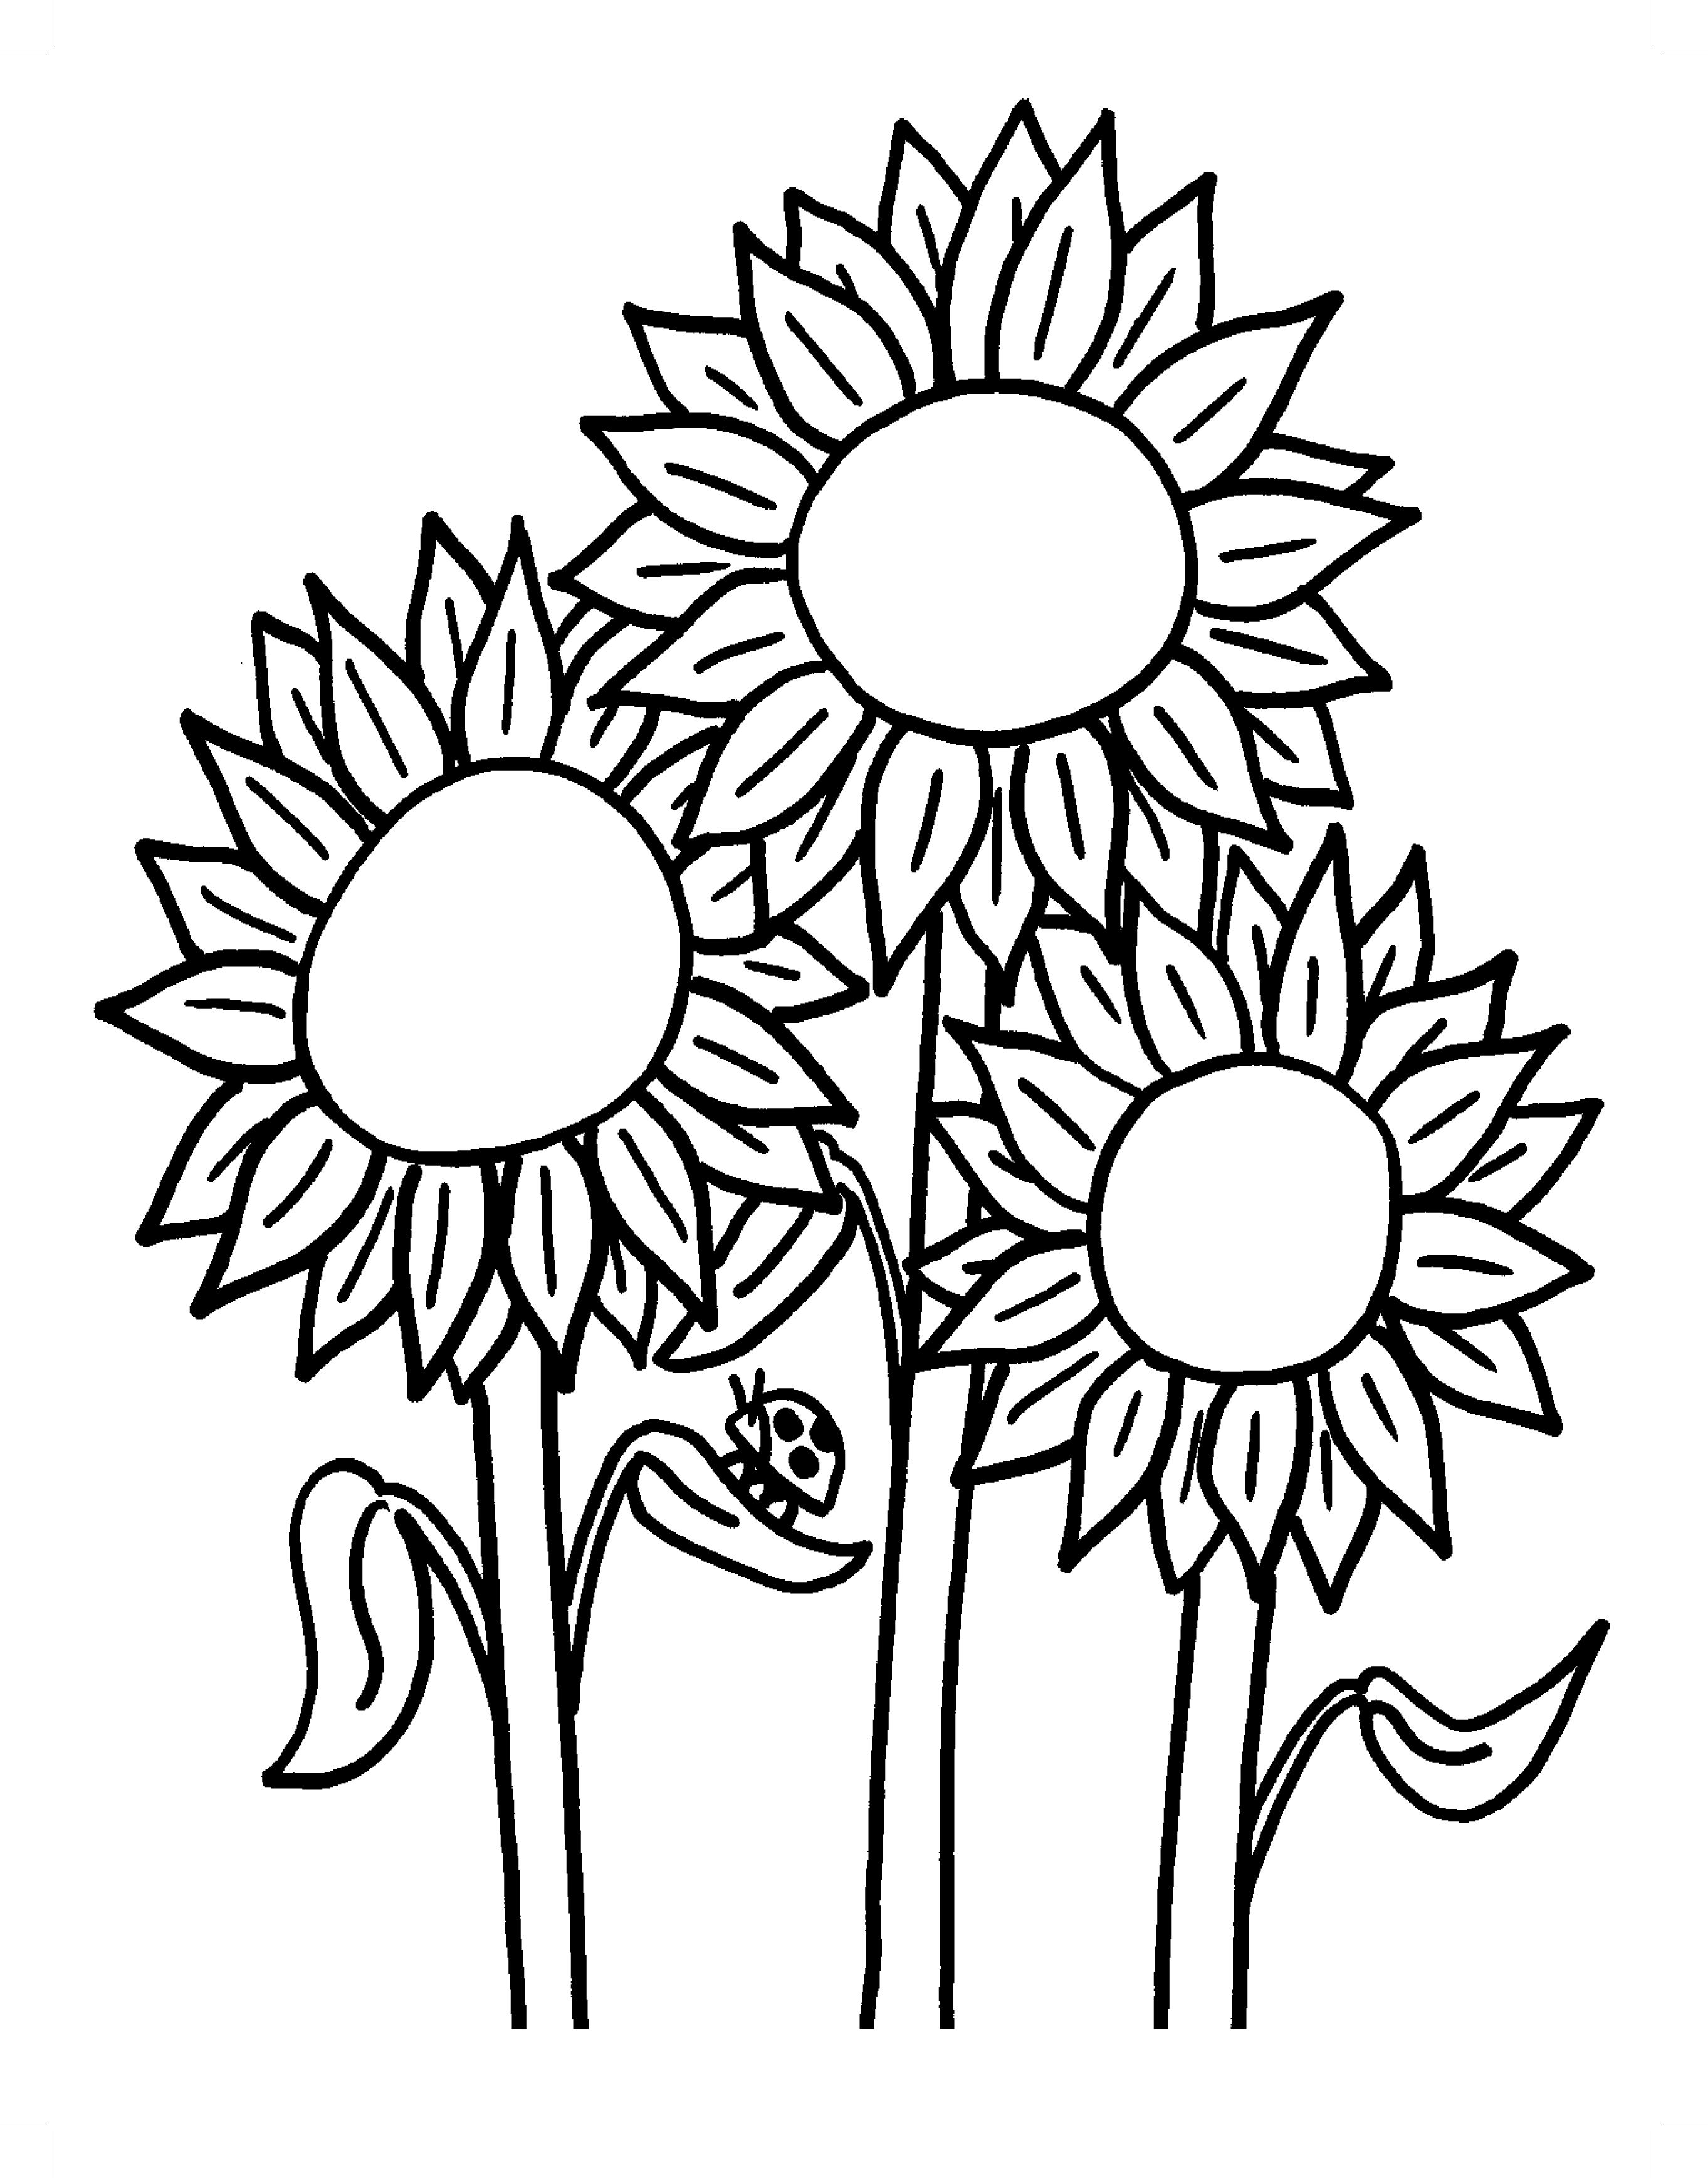 coloring sunflower picture sunflower is blooming coloring page sunflower is blooming sunflower coloring picture